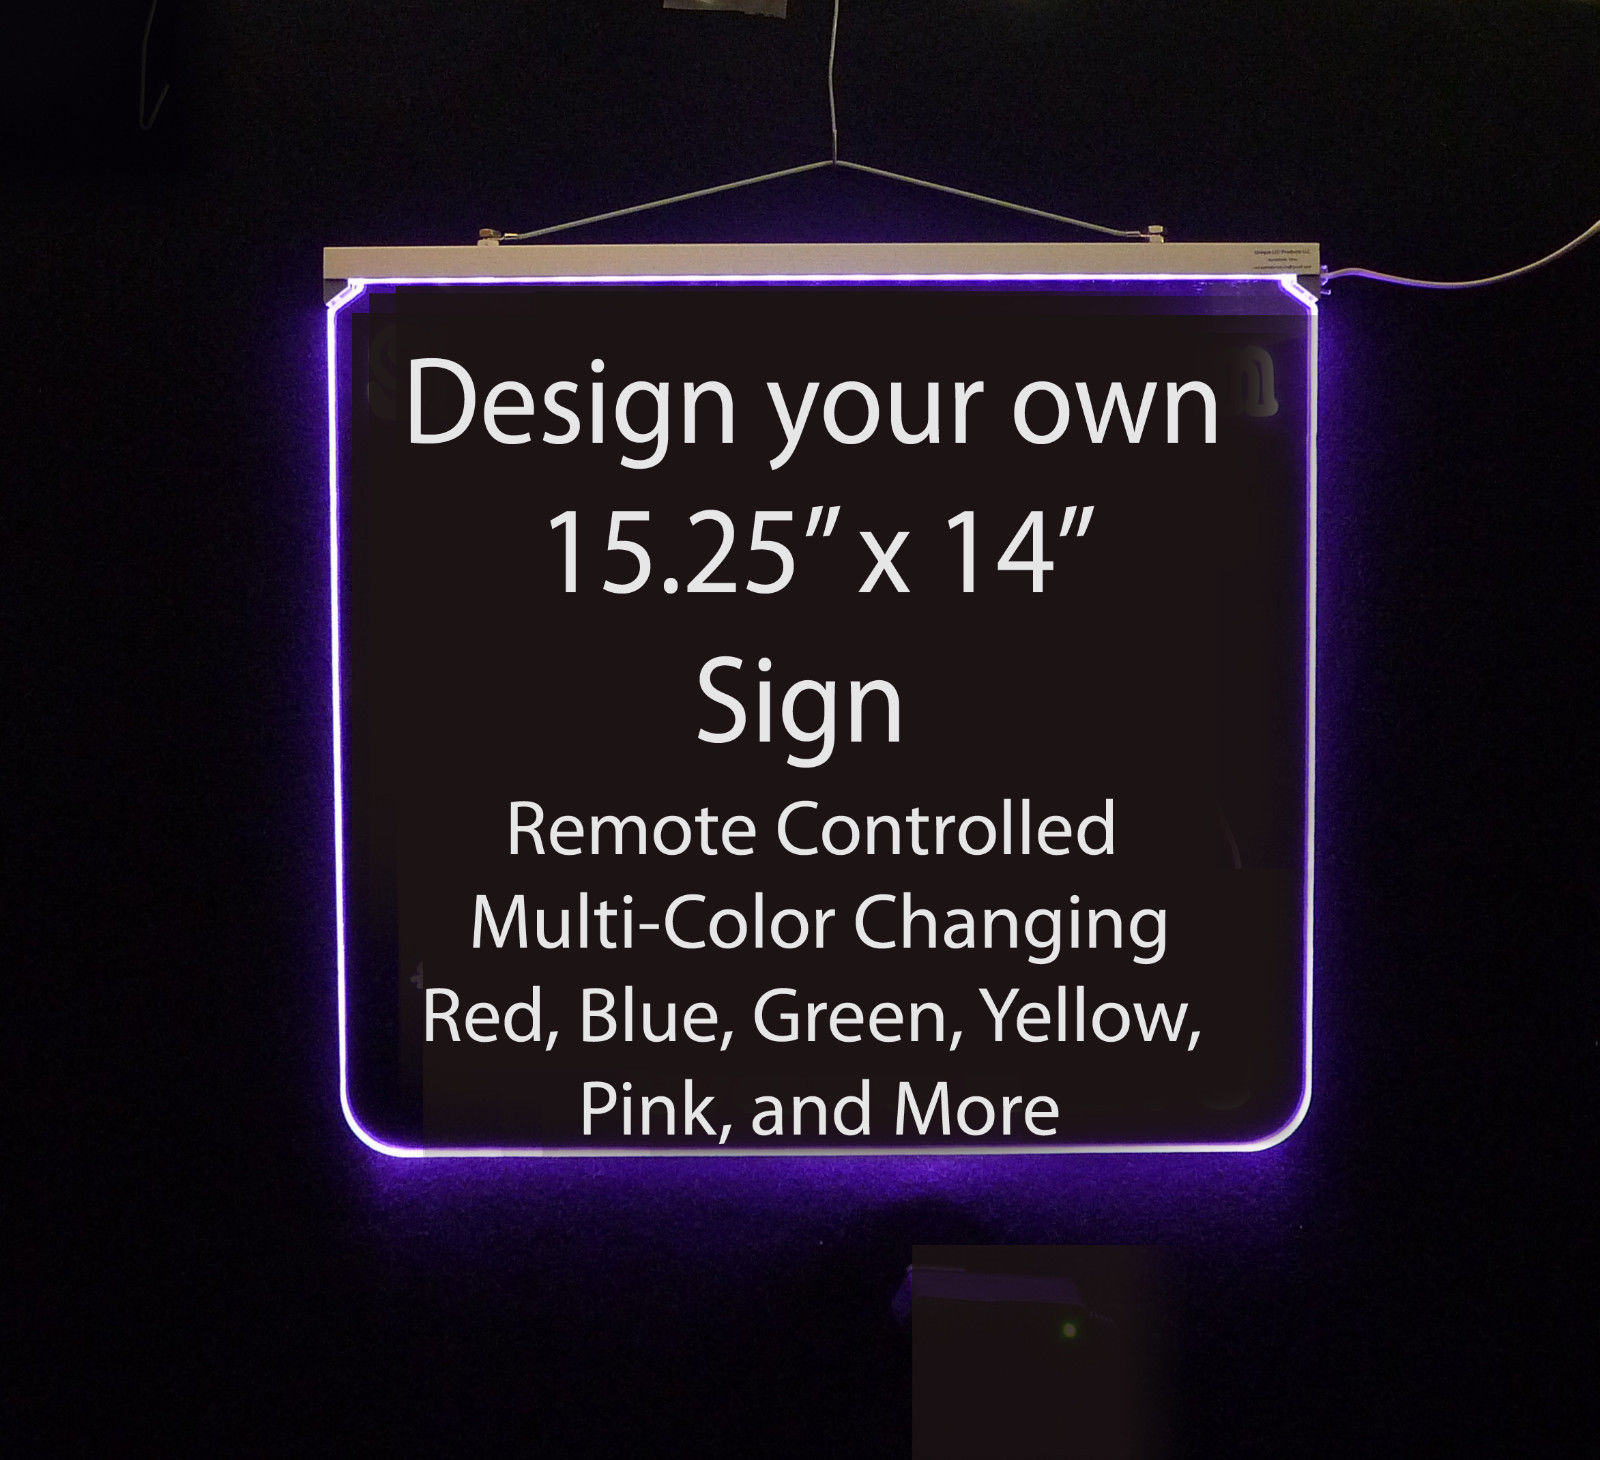 "Personalized LED Sign, 15.25"" x 14"" design your own sign"